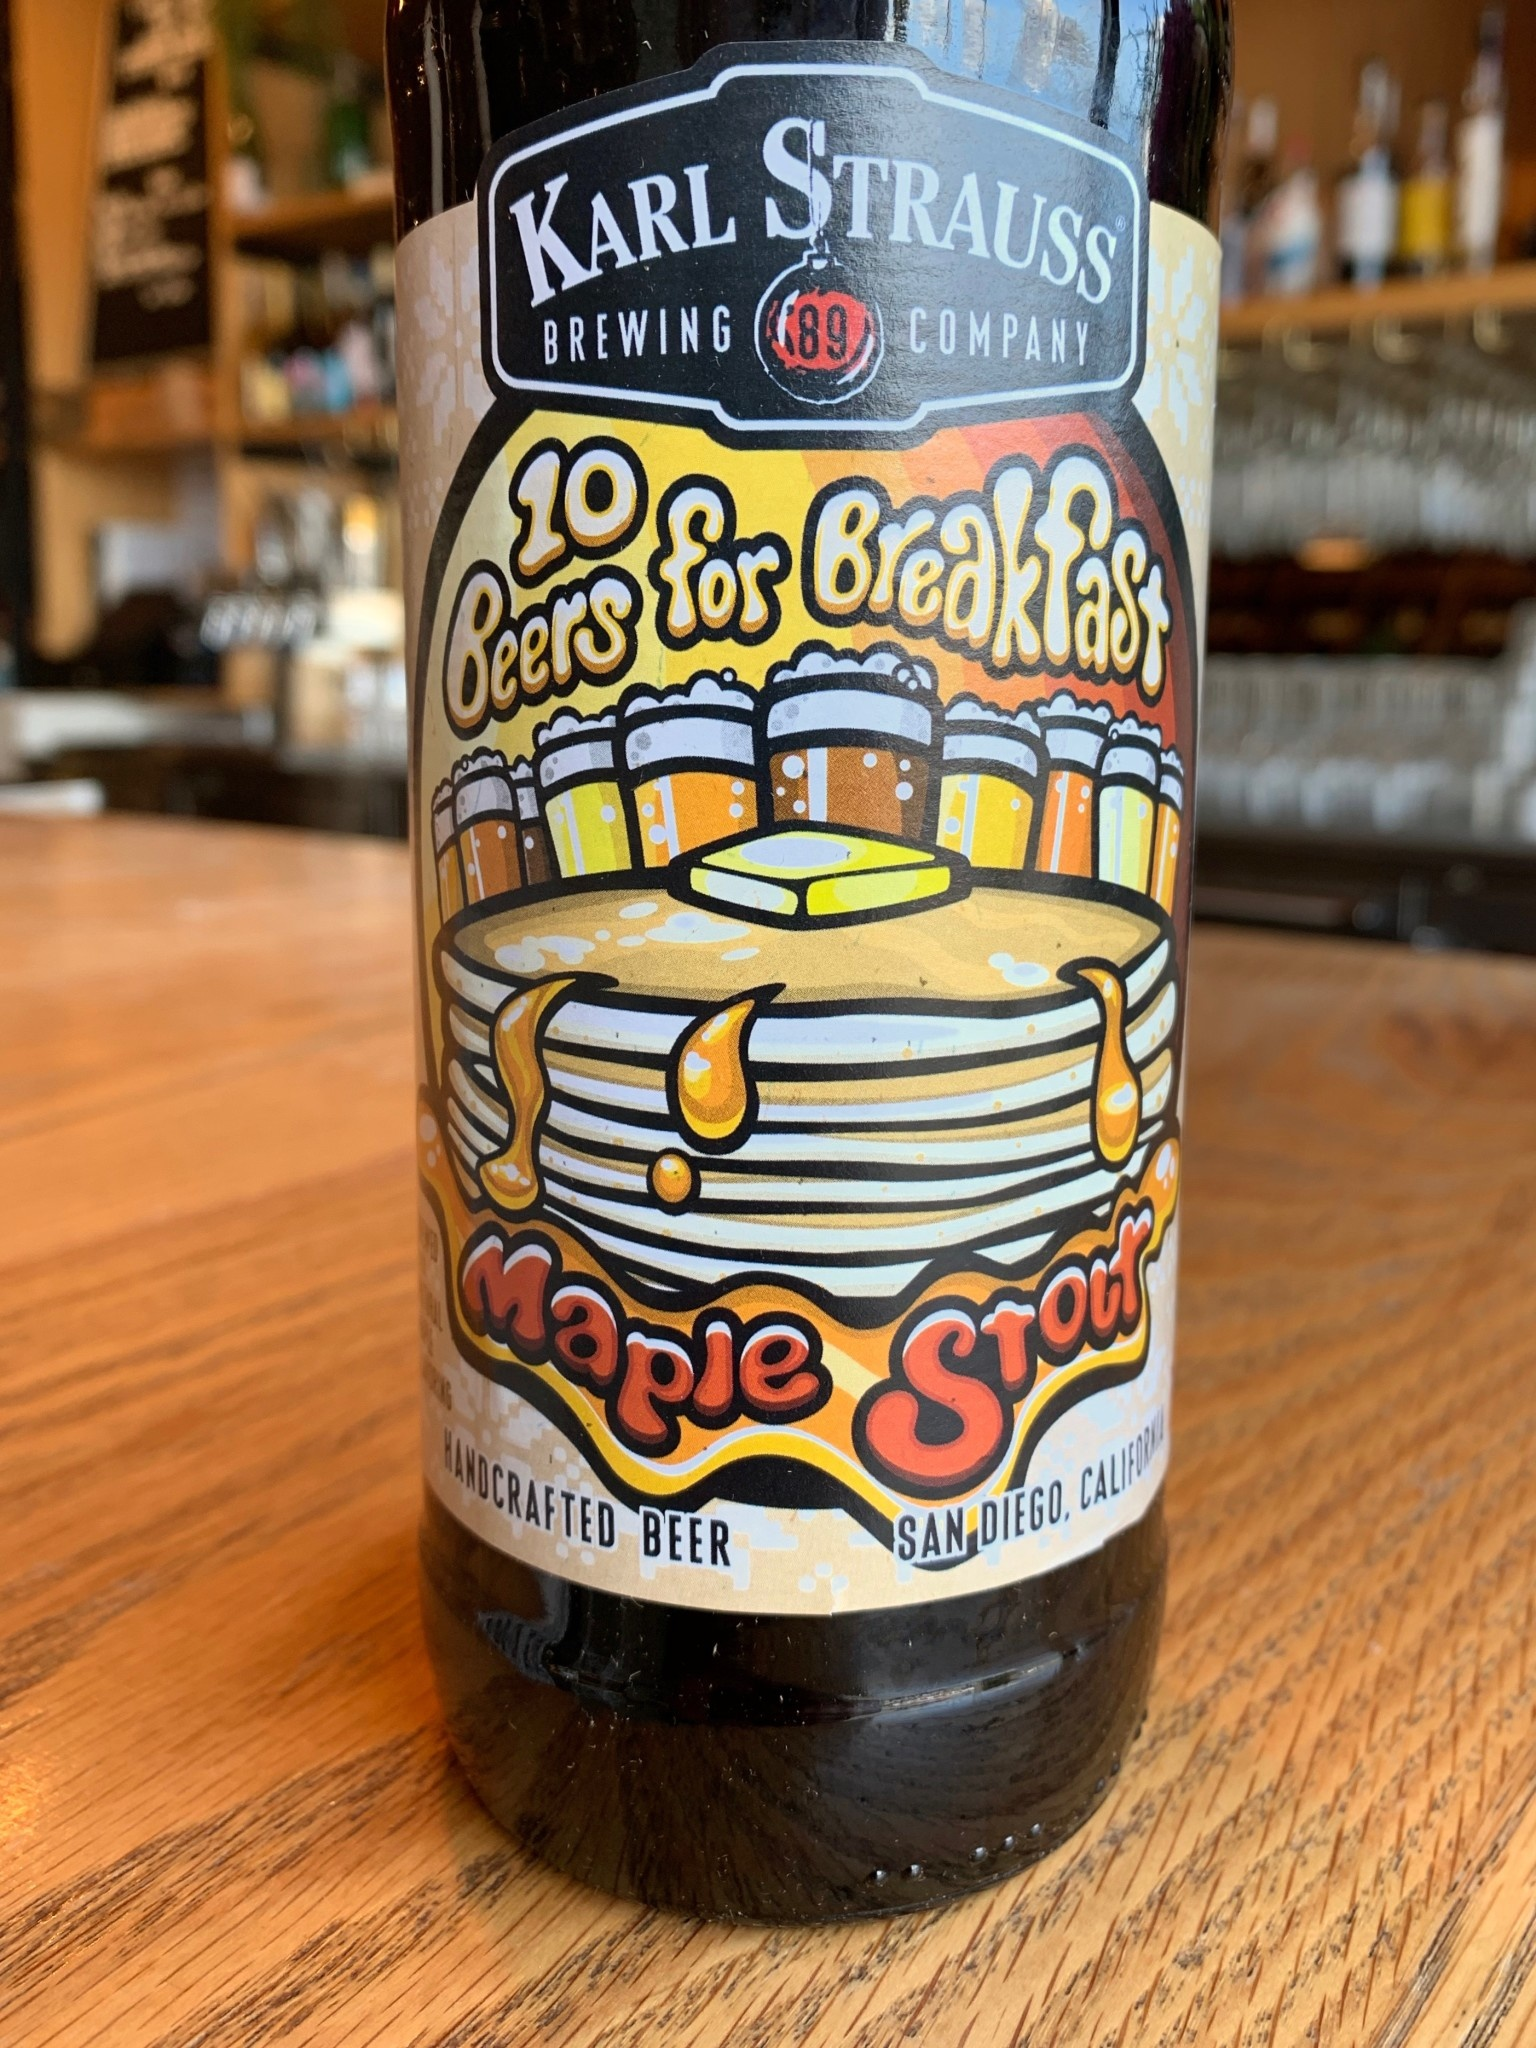 Karl Strauss Karl Strauss Brewing 10 Beers for Breakfast Maple Stout 22oz